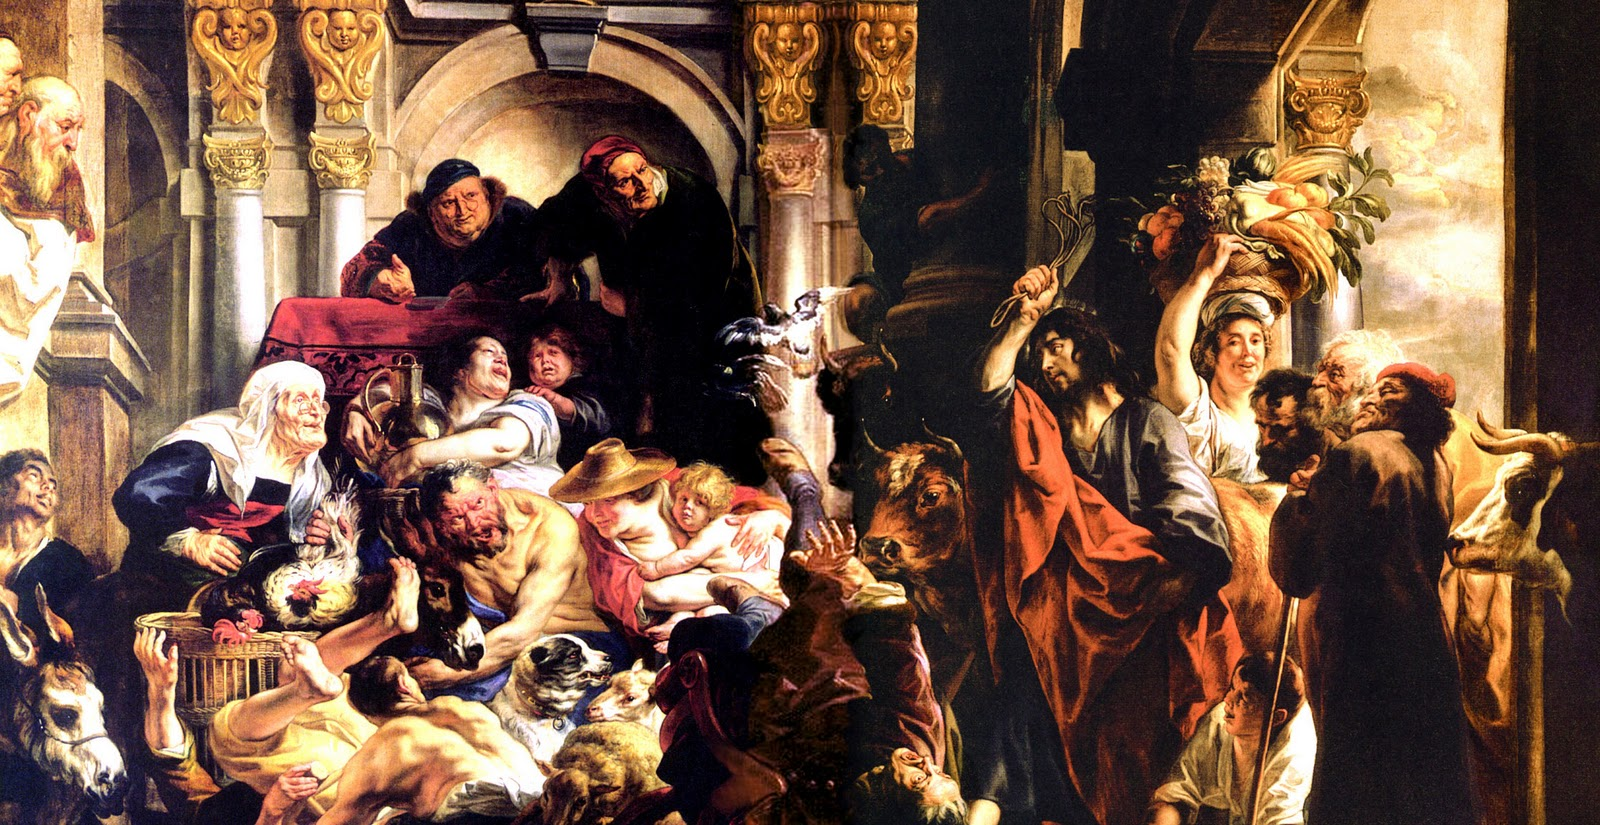 Christ_Driving_Merchants_From_Temple_Jacob_Jordaens1650-1